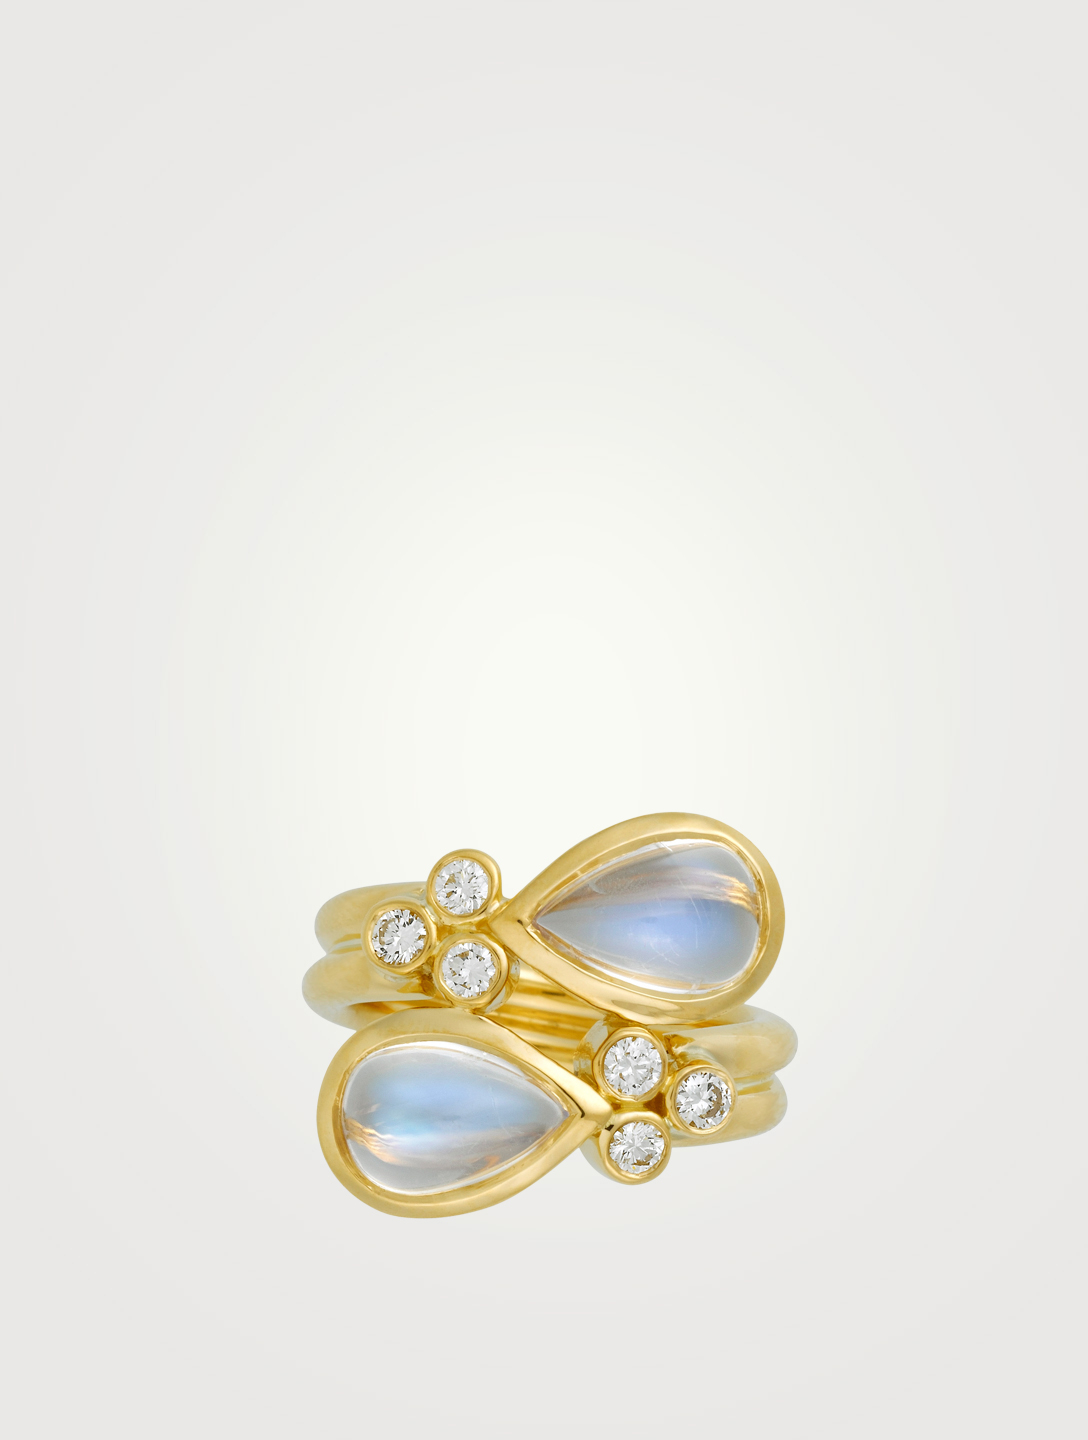 TEMPLE ST. CLAIR 18K Gold Single Mummy Ring With Royal Blue Moonstone And Diamond Women's Gold